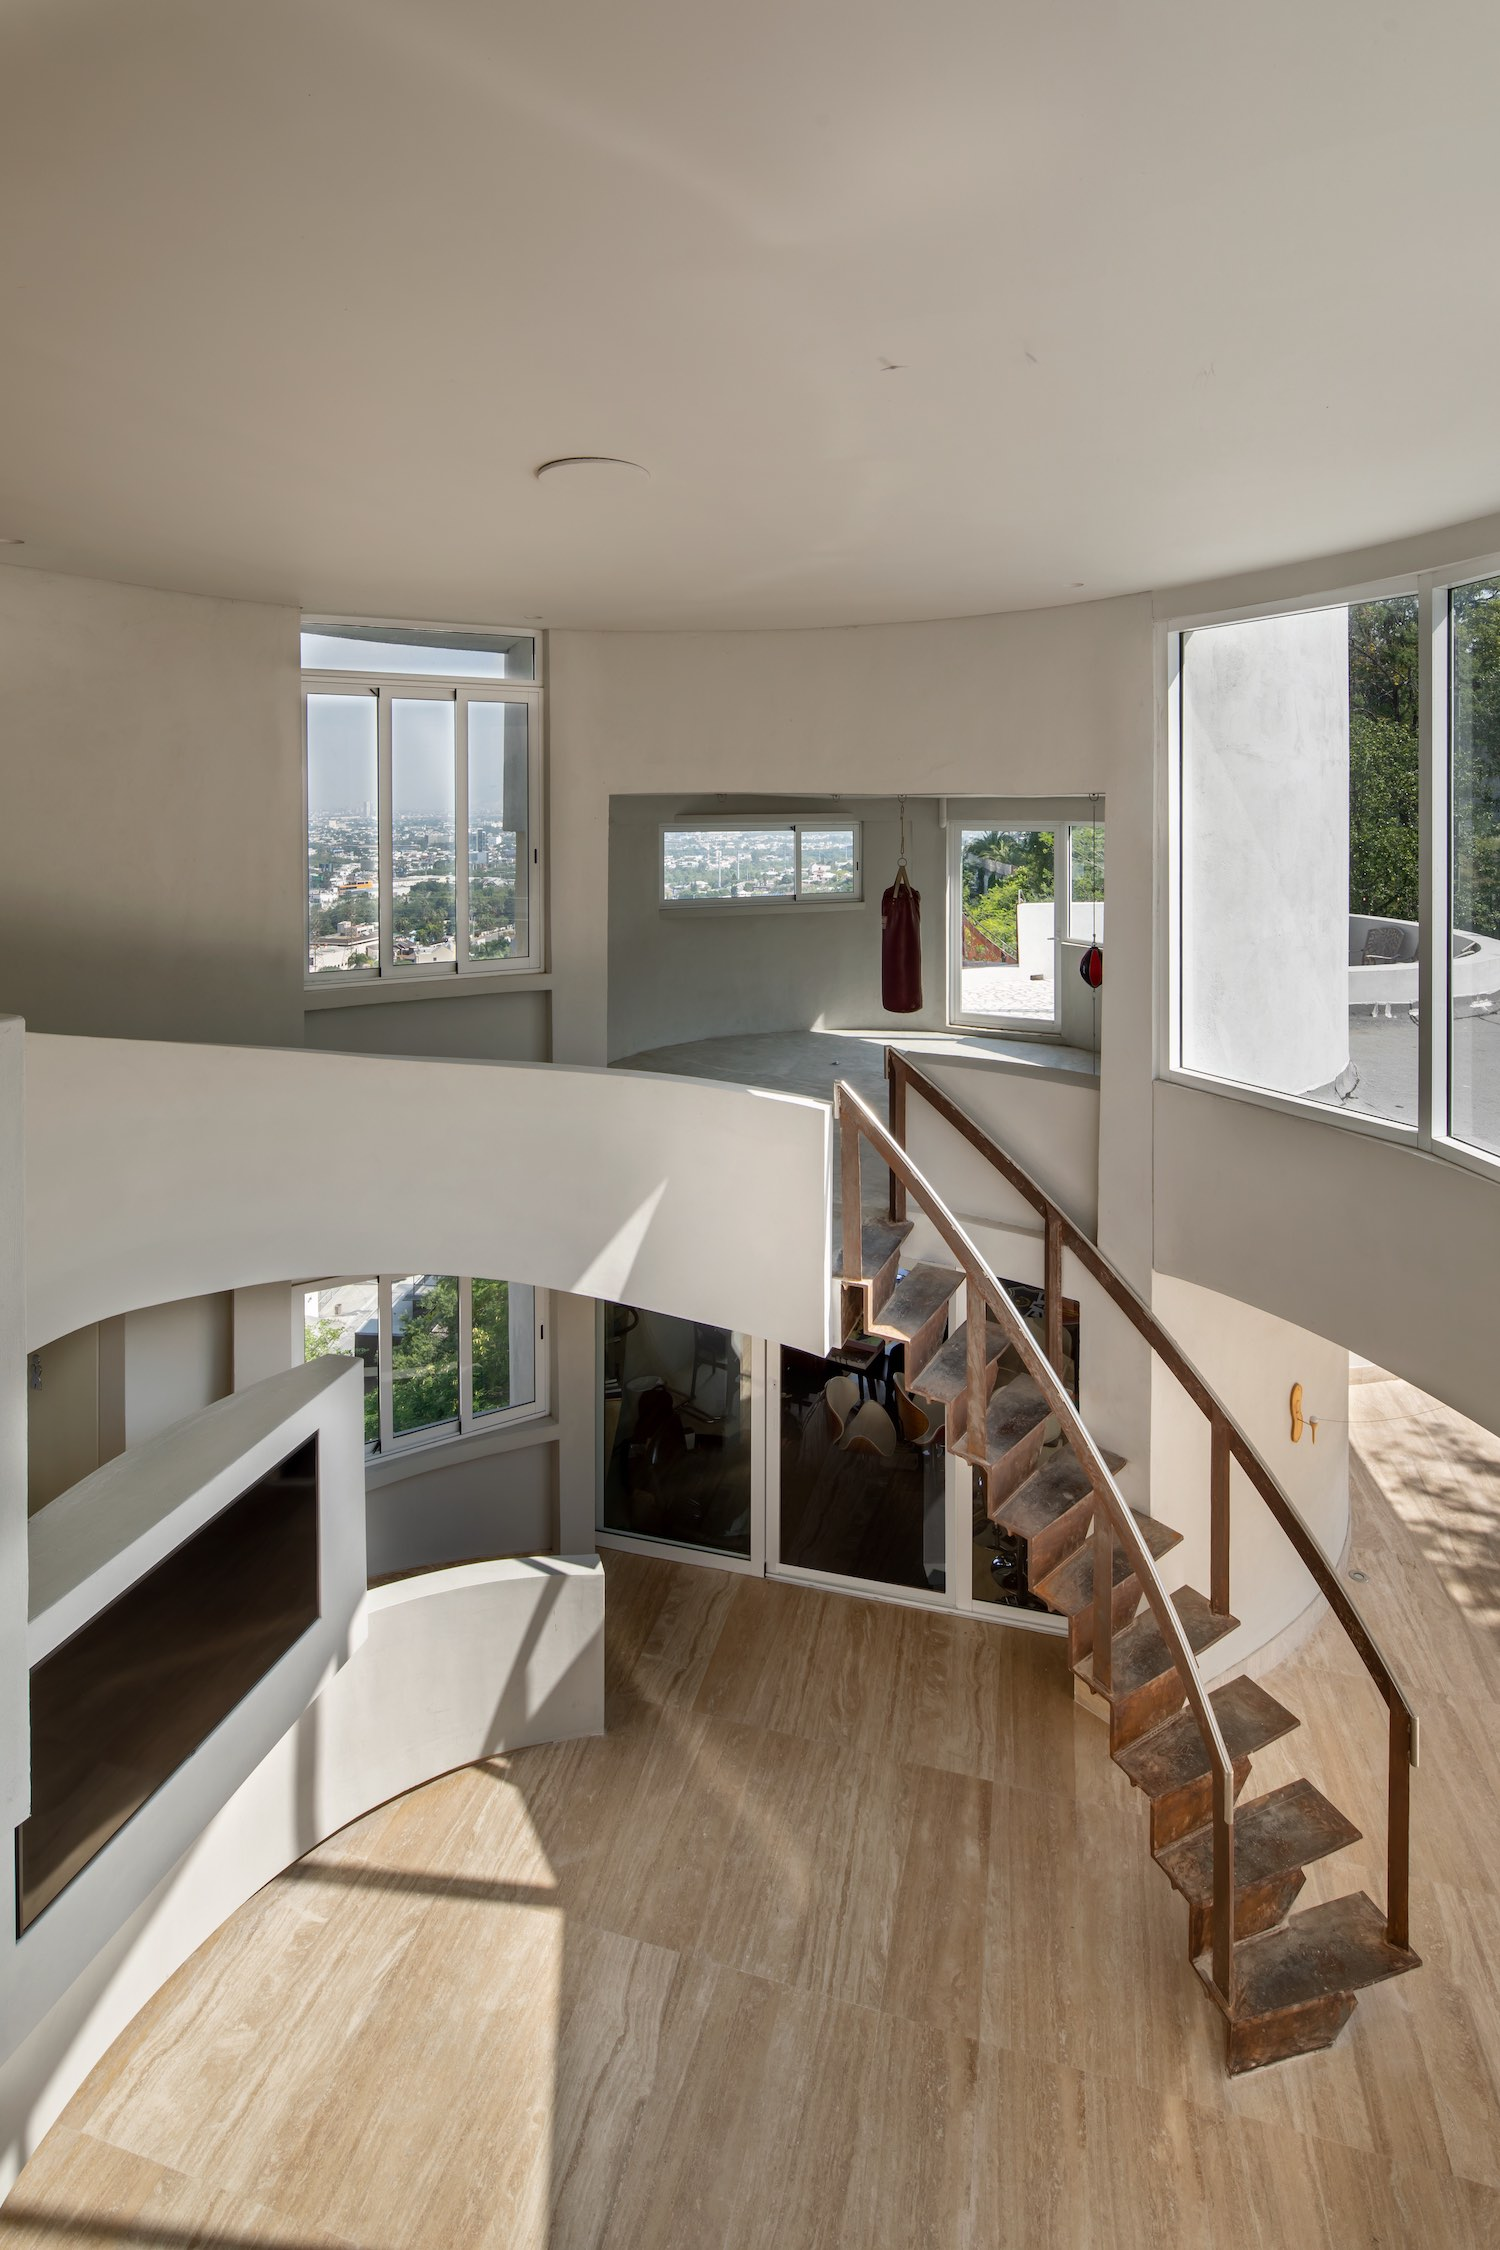 sunlight enters the house through windows in the ceiling